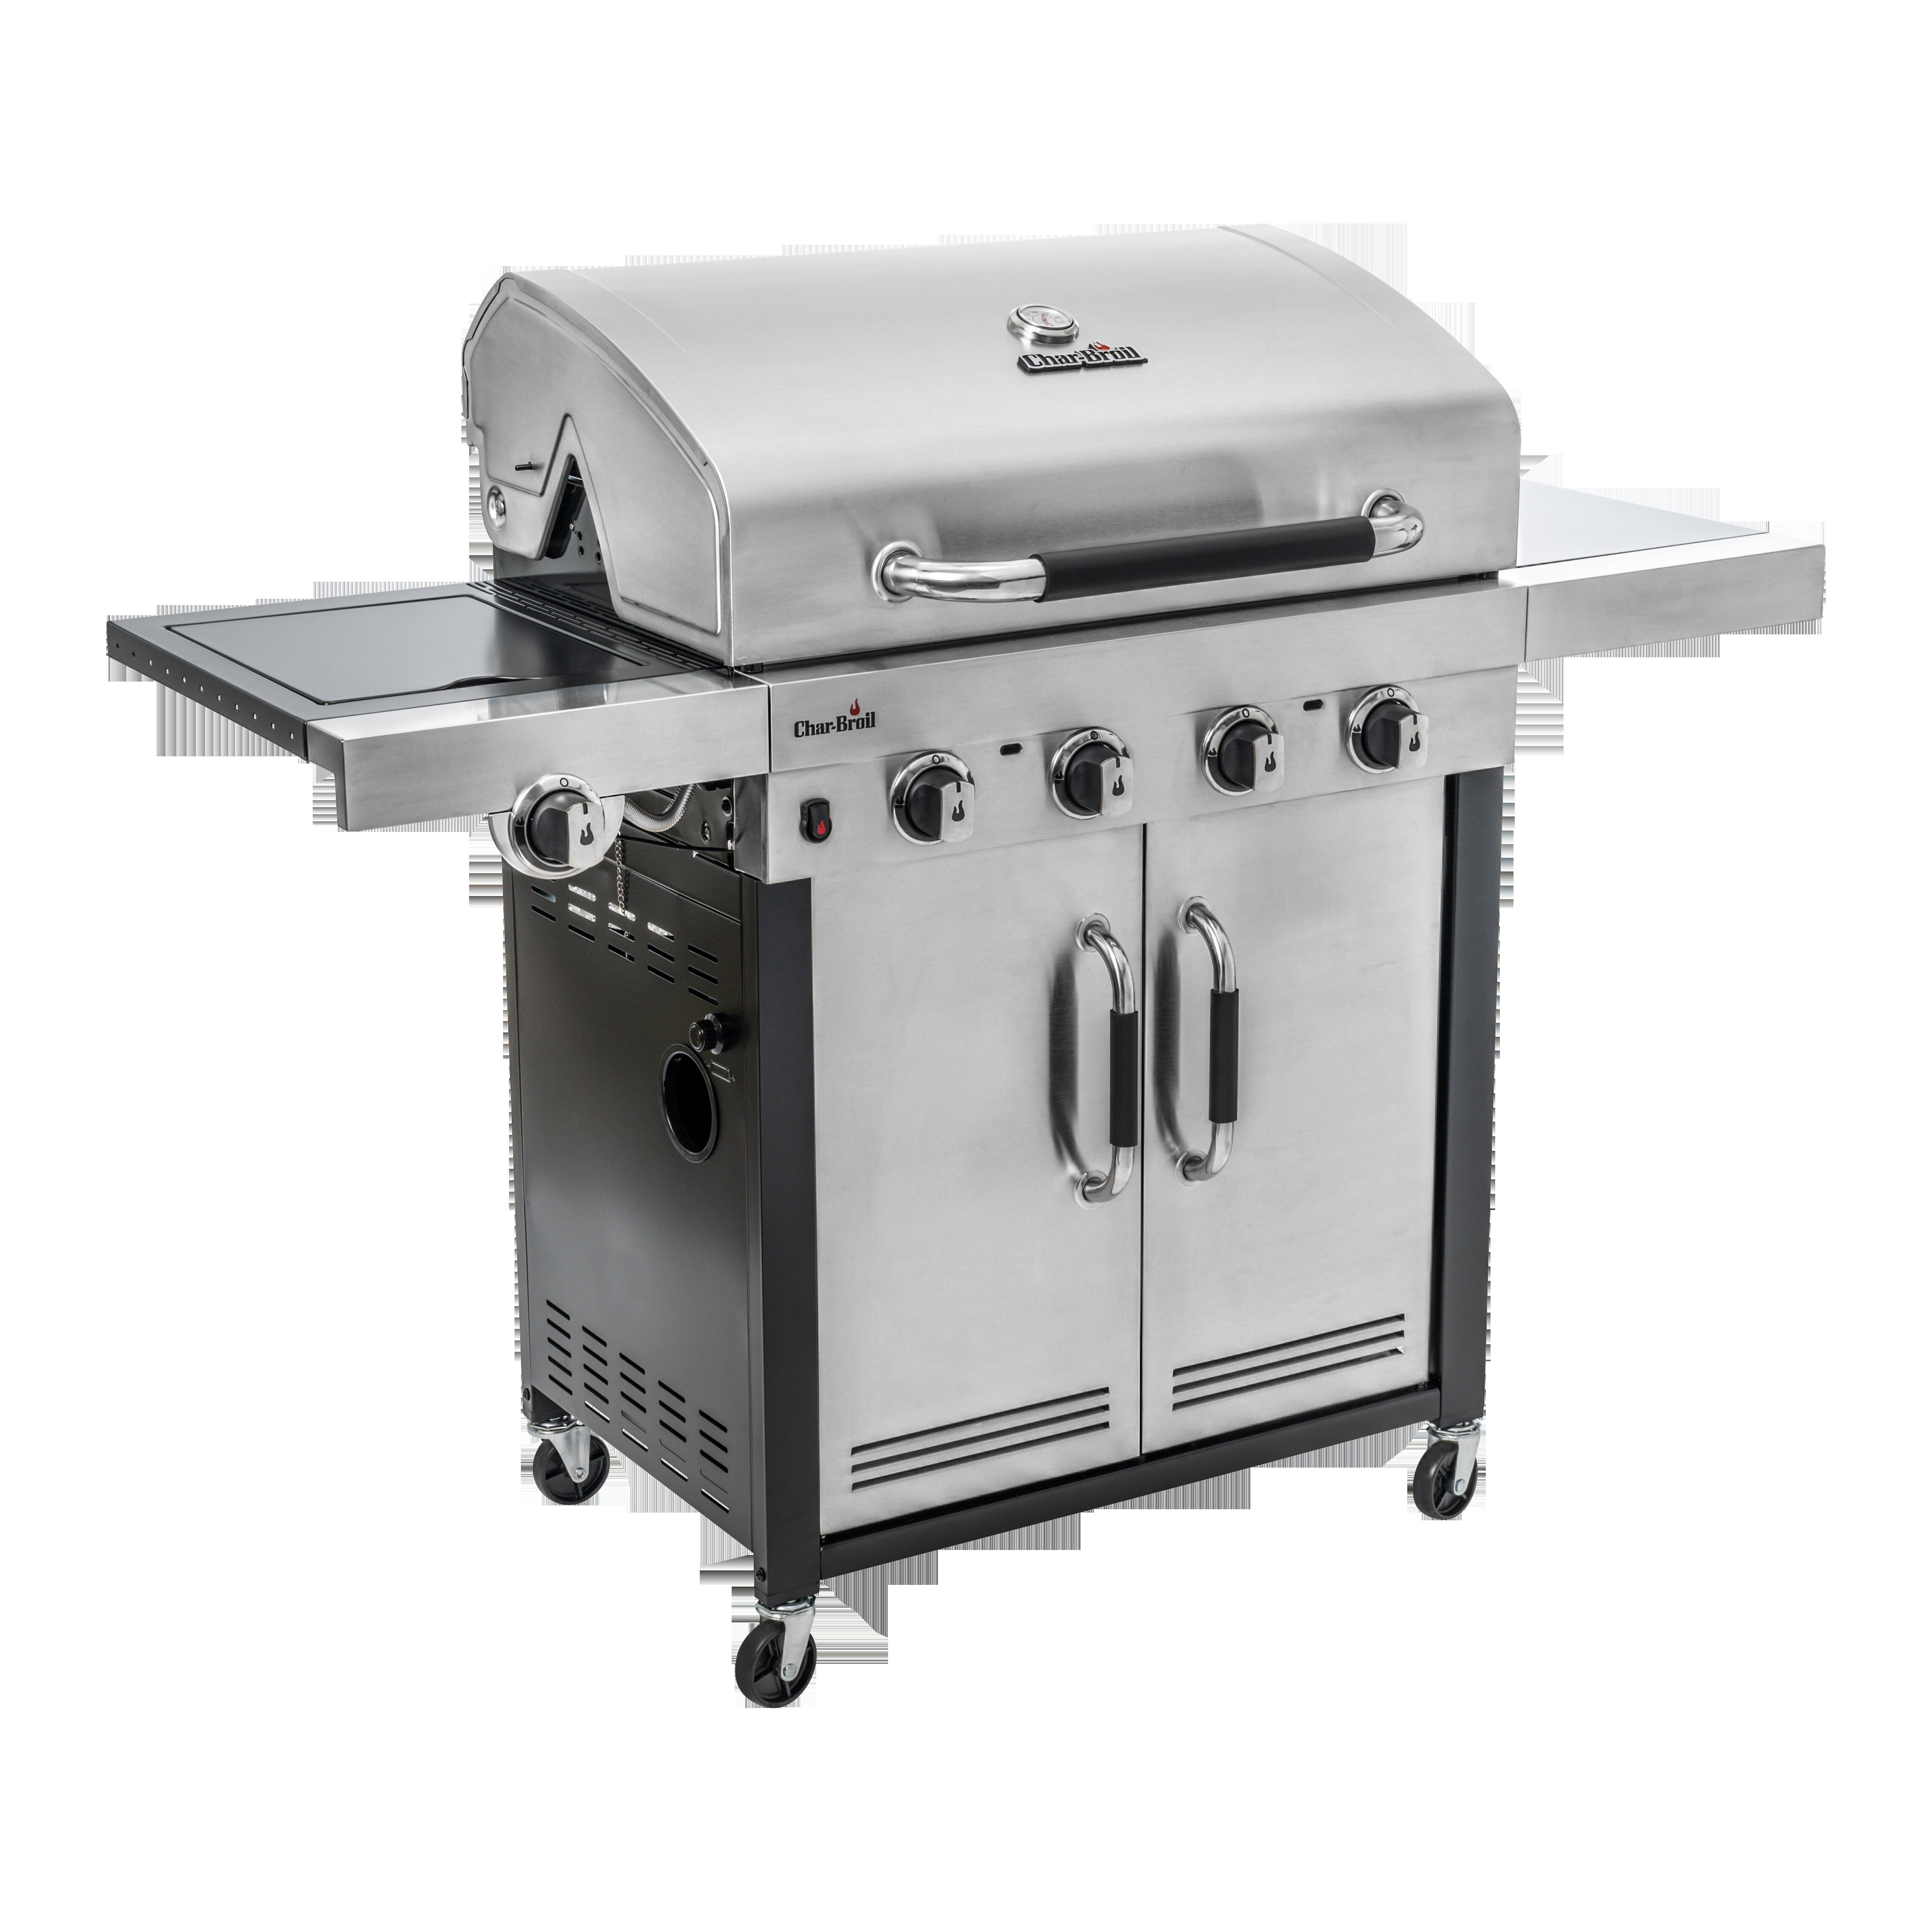 Char Broil Advantage Series 445s 4 Burner Gas Barbecue Grill With Tru Infrared Technology Stainless Steel Finish Reviews Wayfair Co Uk